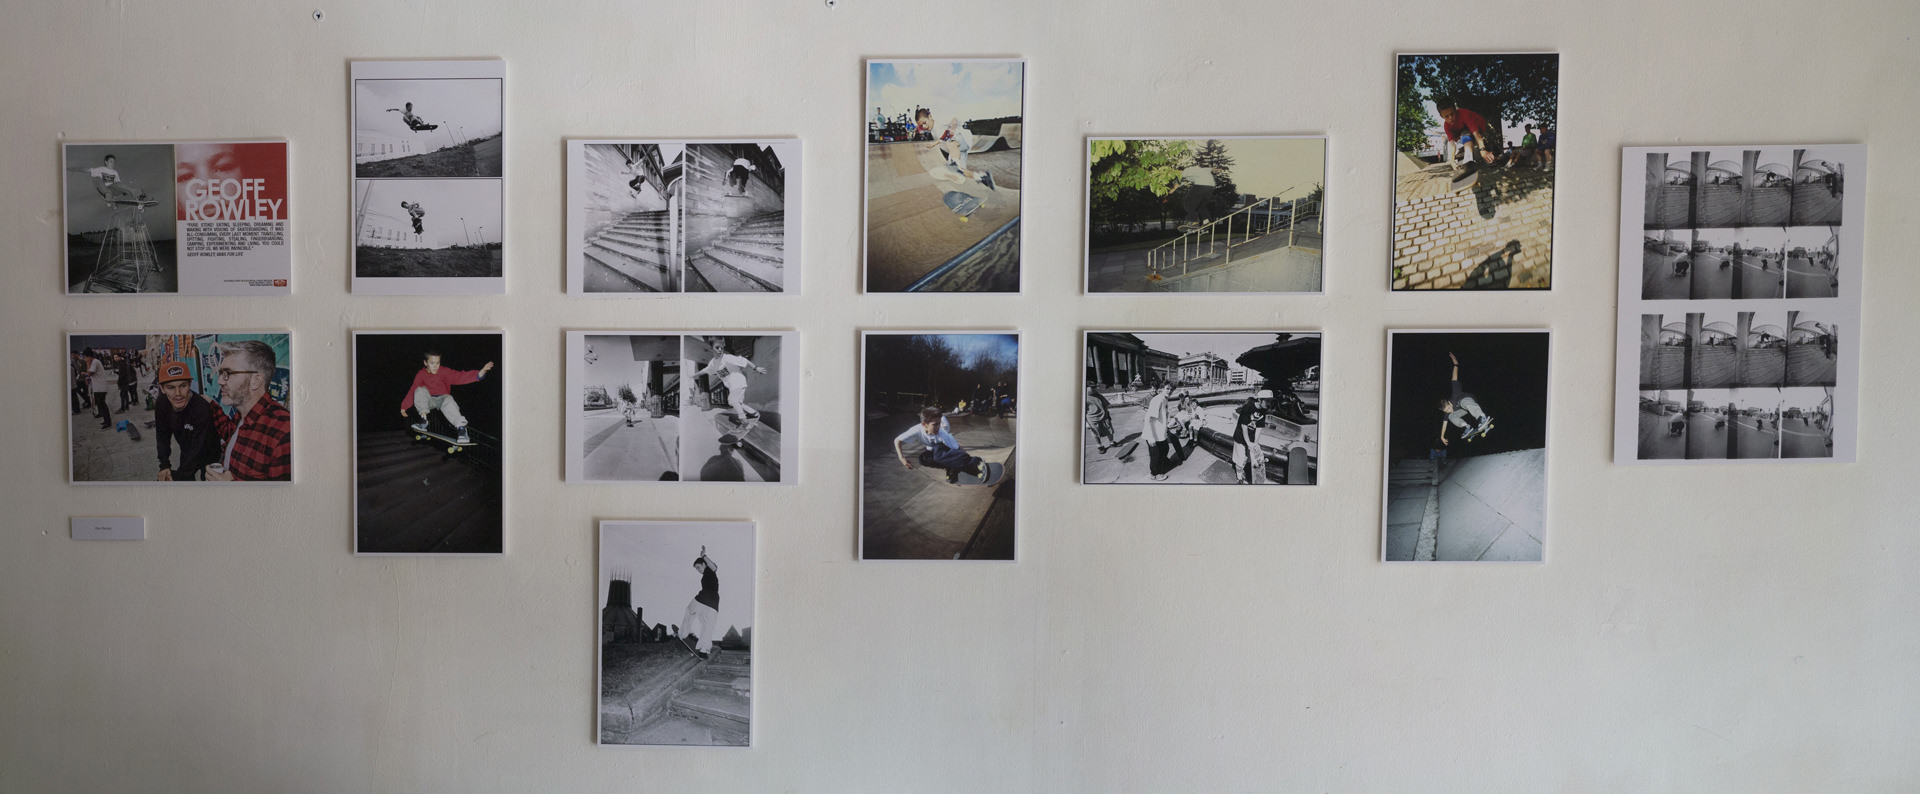 An image of the photos taken by Kev Banks of Geoff Rowley in the photographic exibition